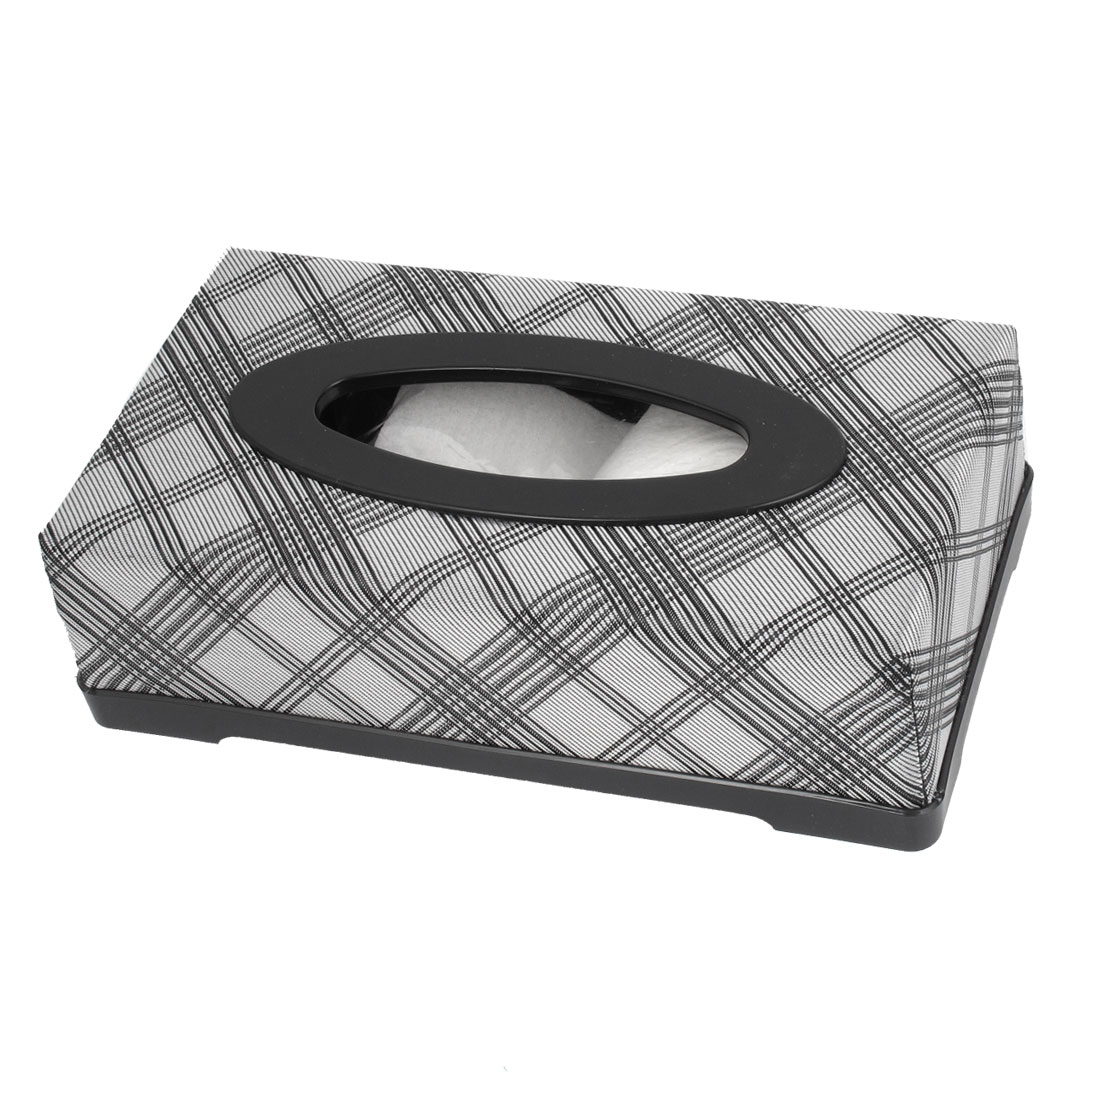 Car Vehicle Portable Rectangular Gray Nylon Tissue Box Holder Case 22 x 12cm